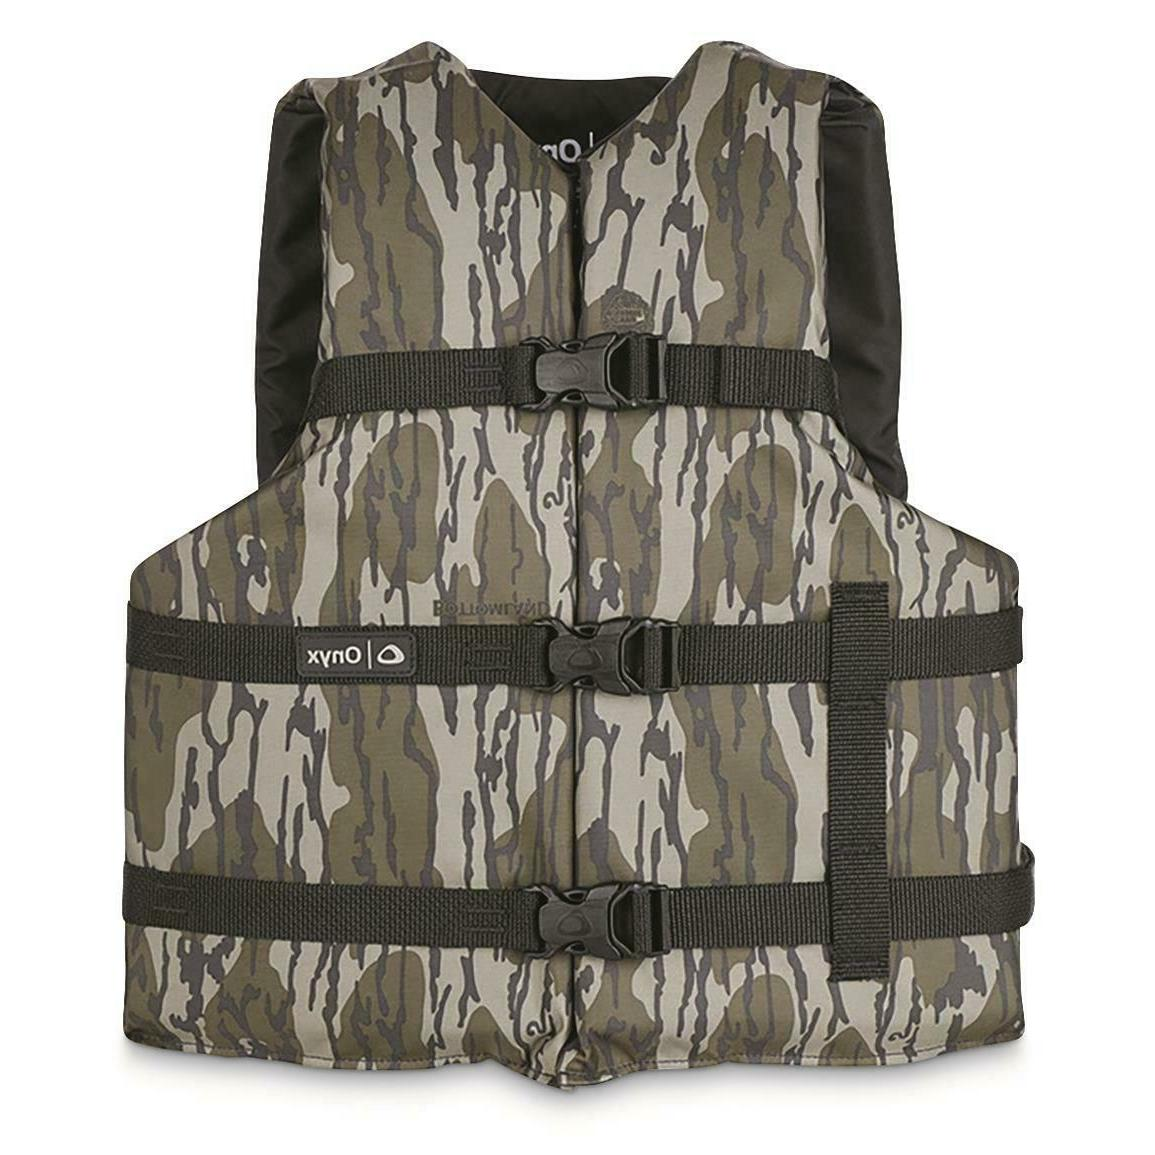 Universal Life Vest Onyx Adult General Purpose PFD Mossy Oak